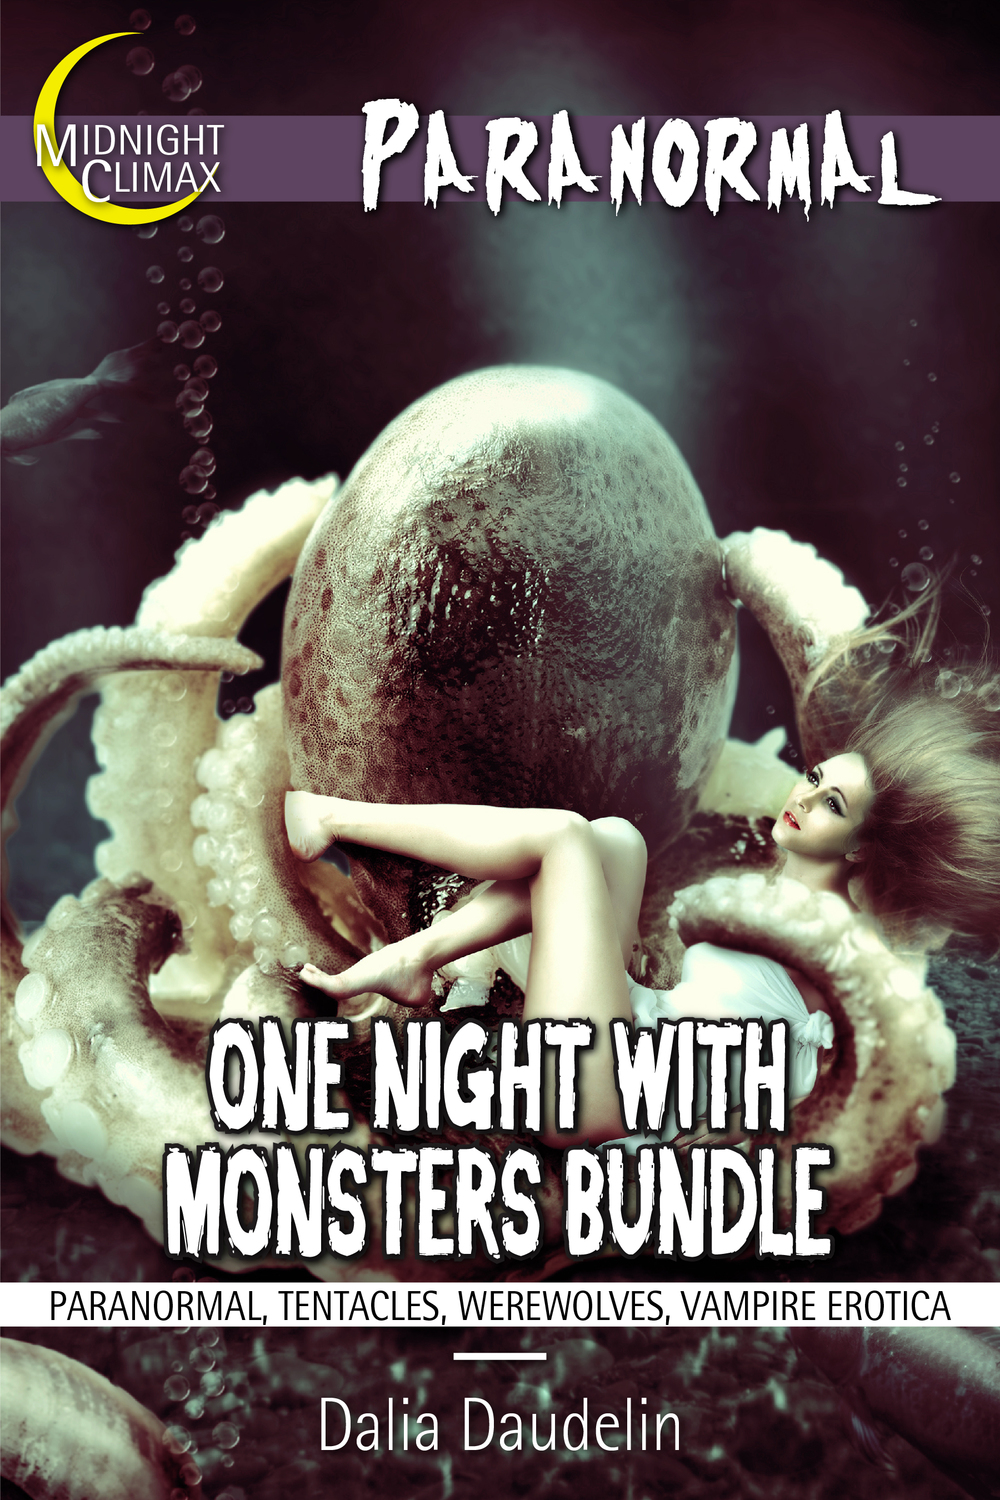 One Night with Monsters Bundle_Paranormal.jpg